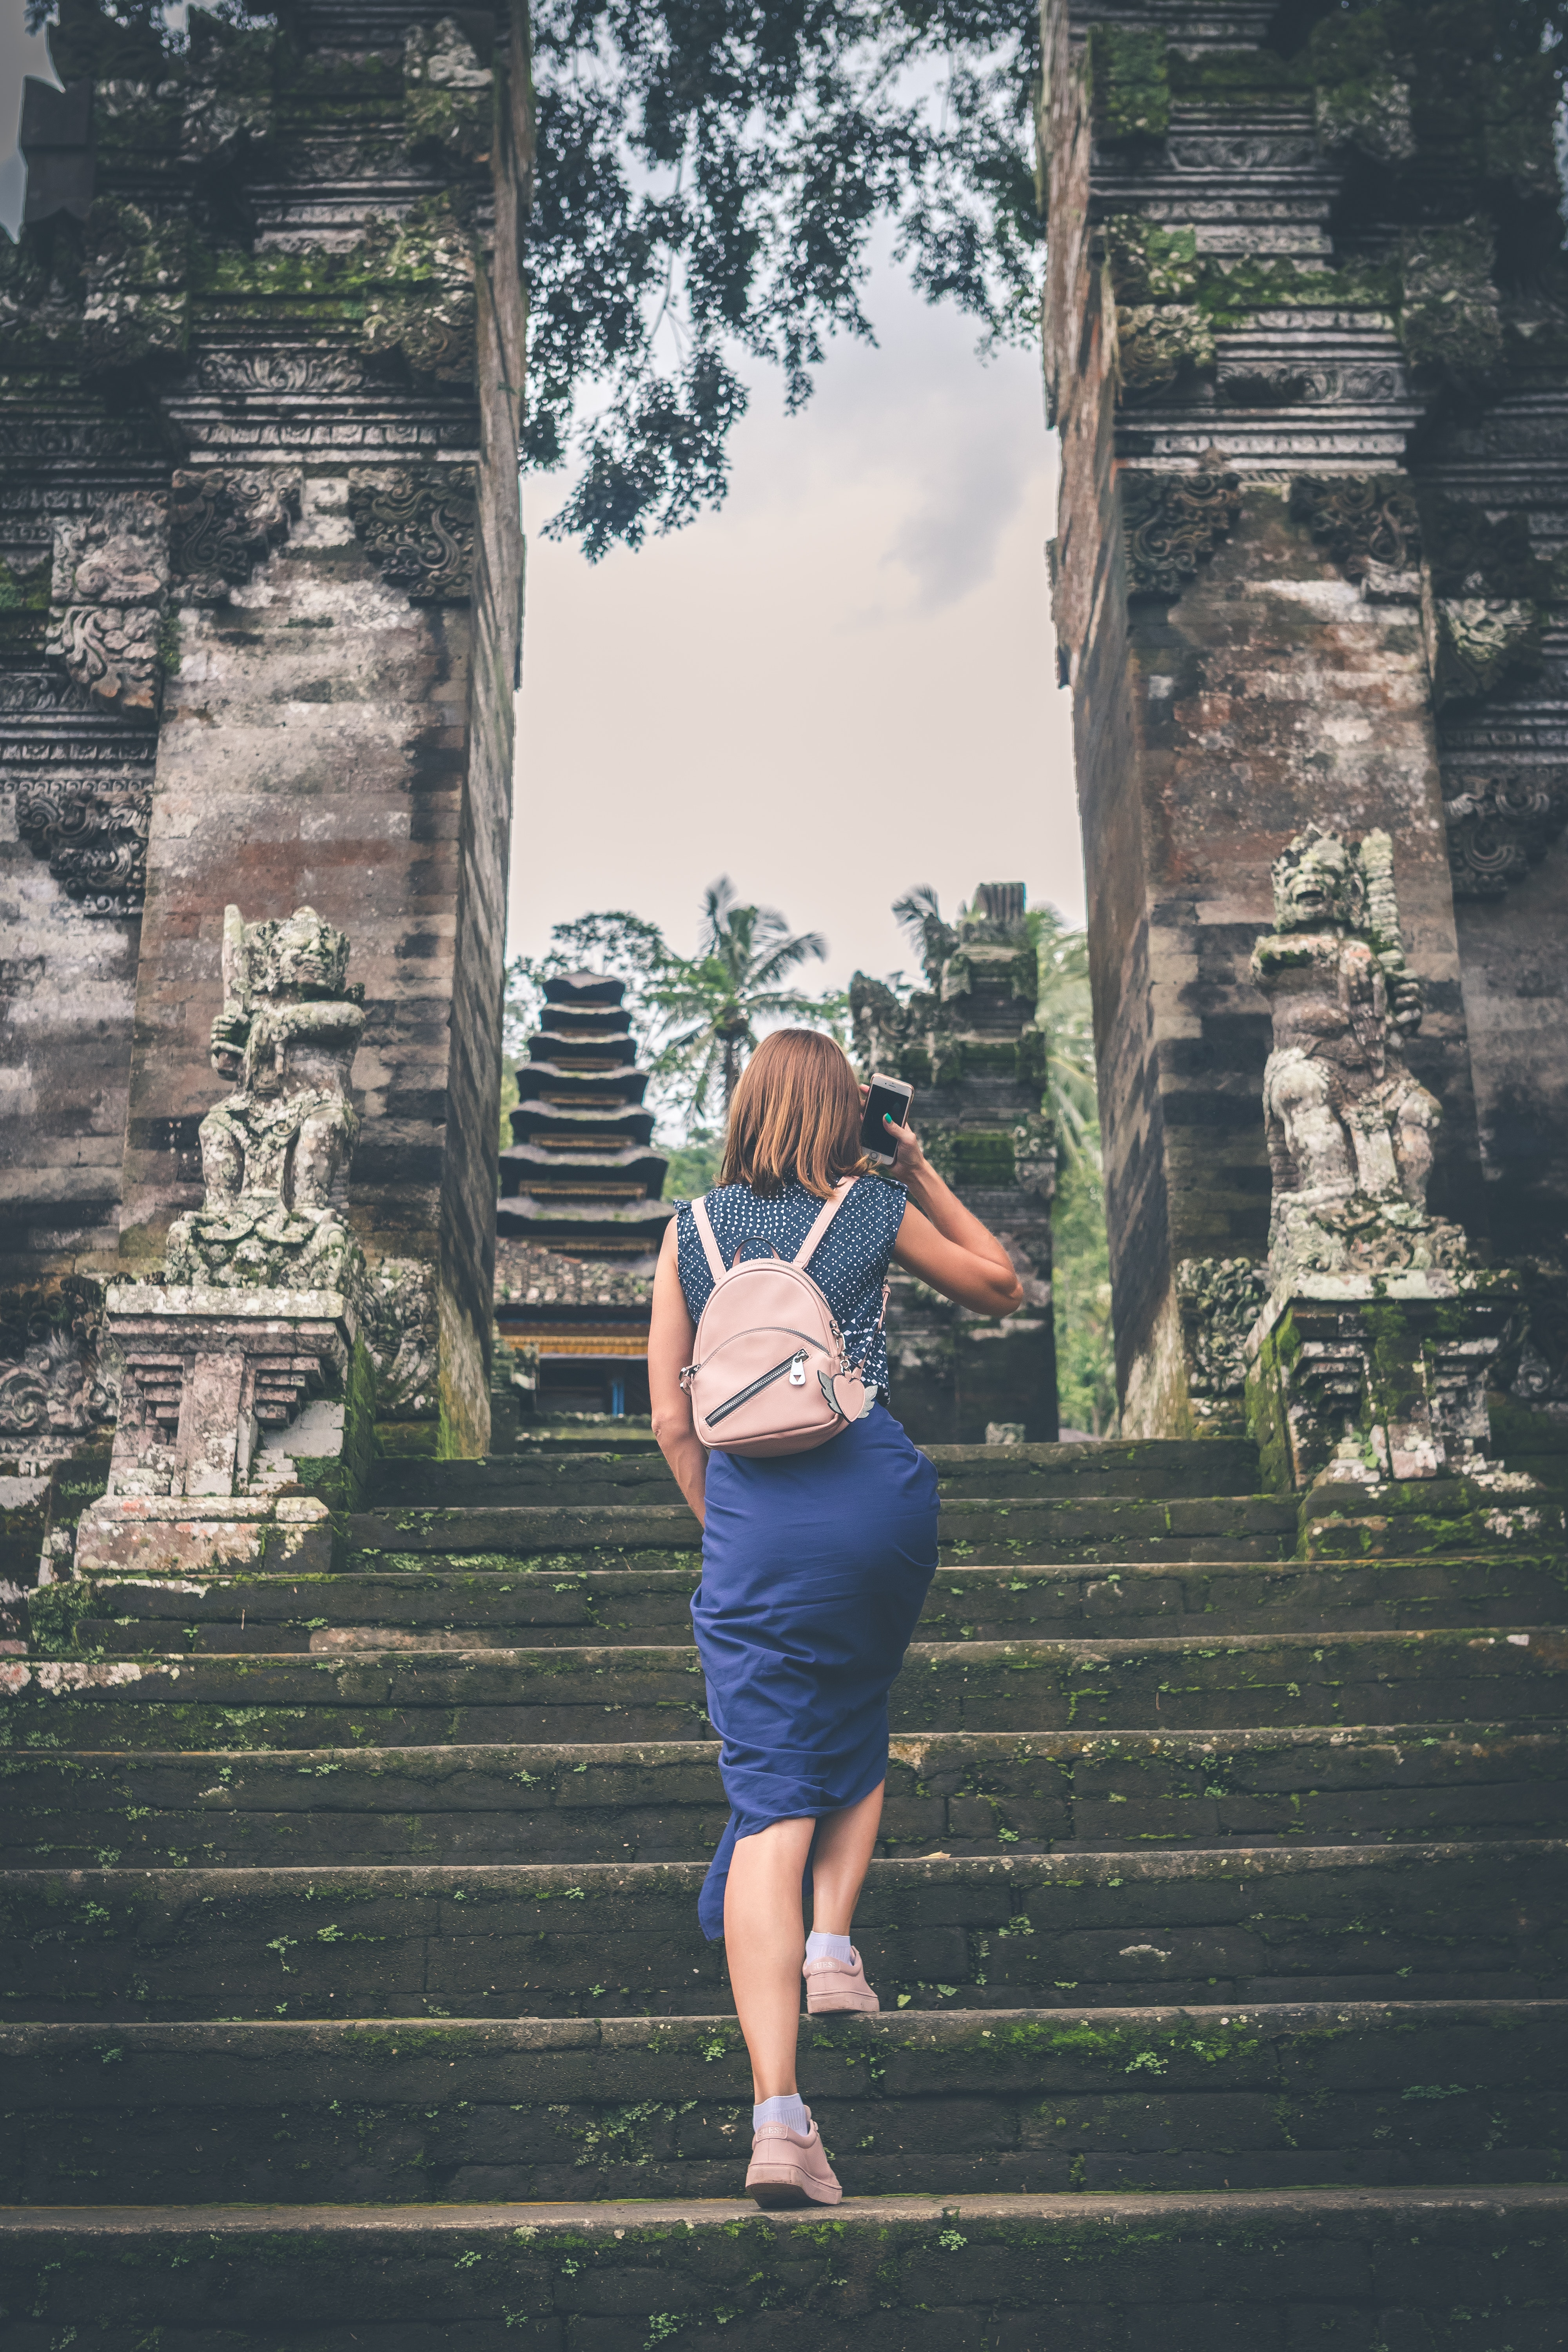 Woman in Blue Dress Walking on Concrete Staircase Leading to Buildings, Ancient, Statues, Religious, Ruins, HQ Photo